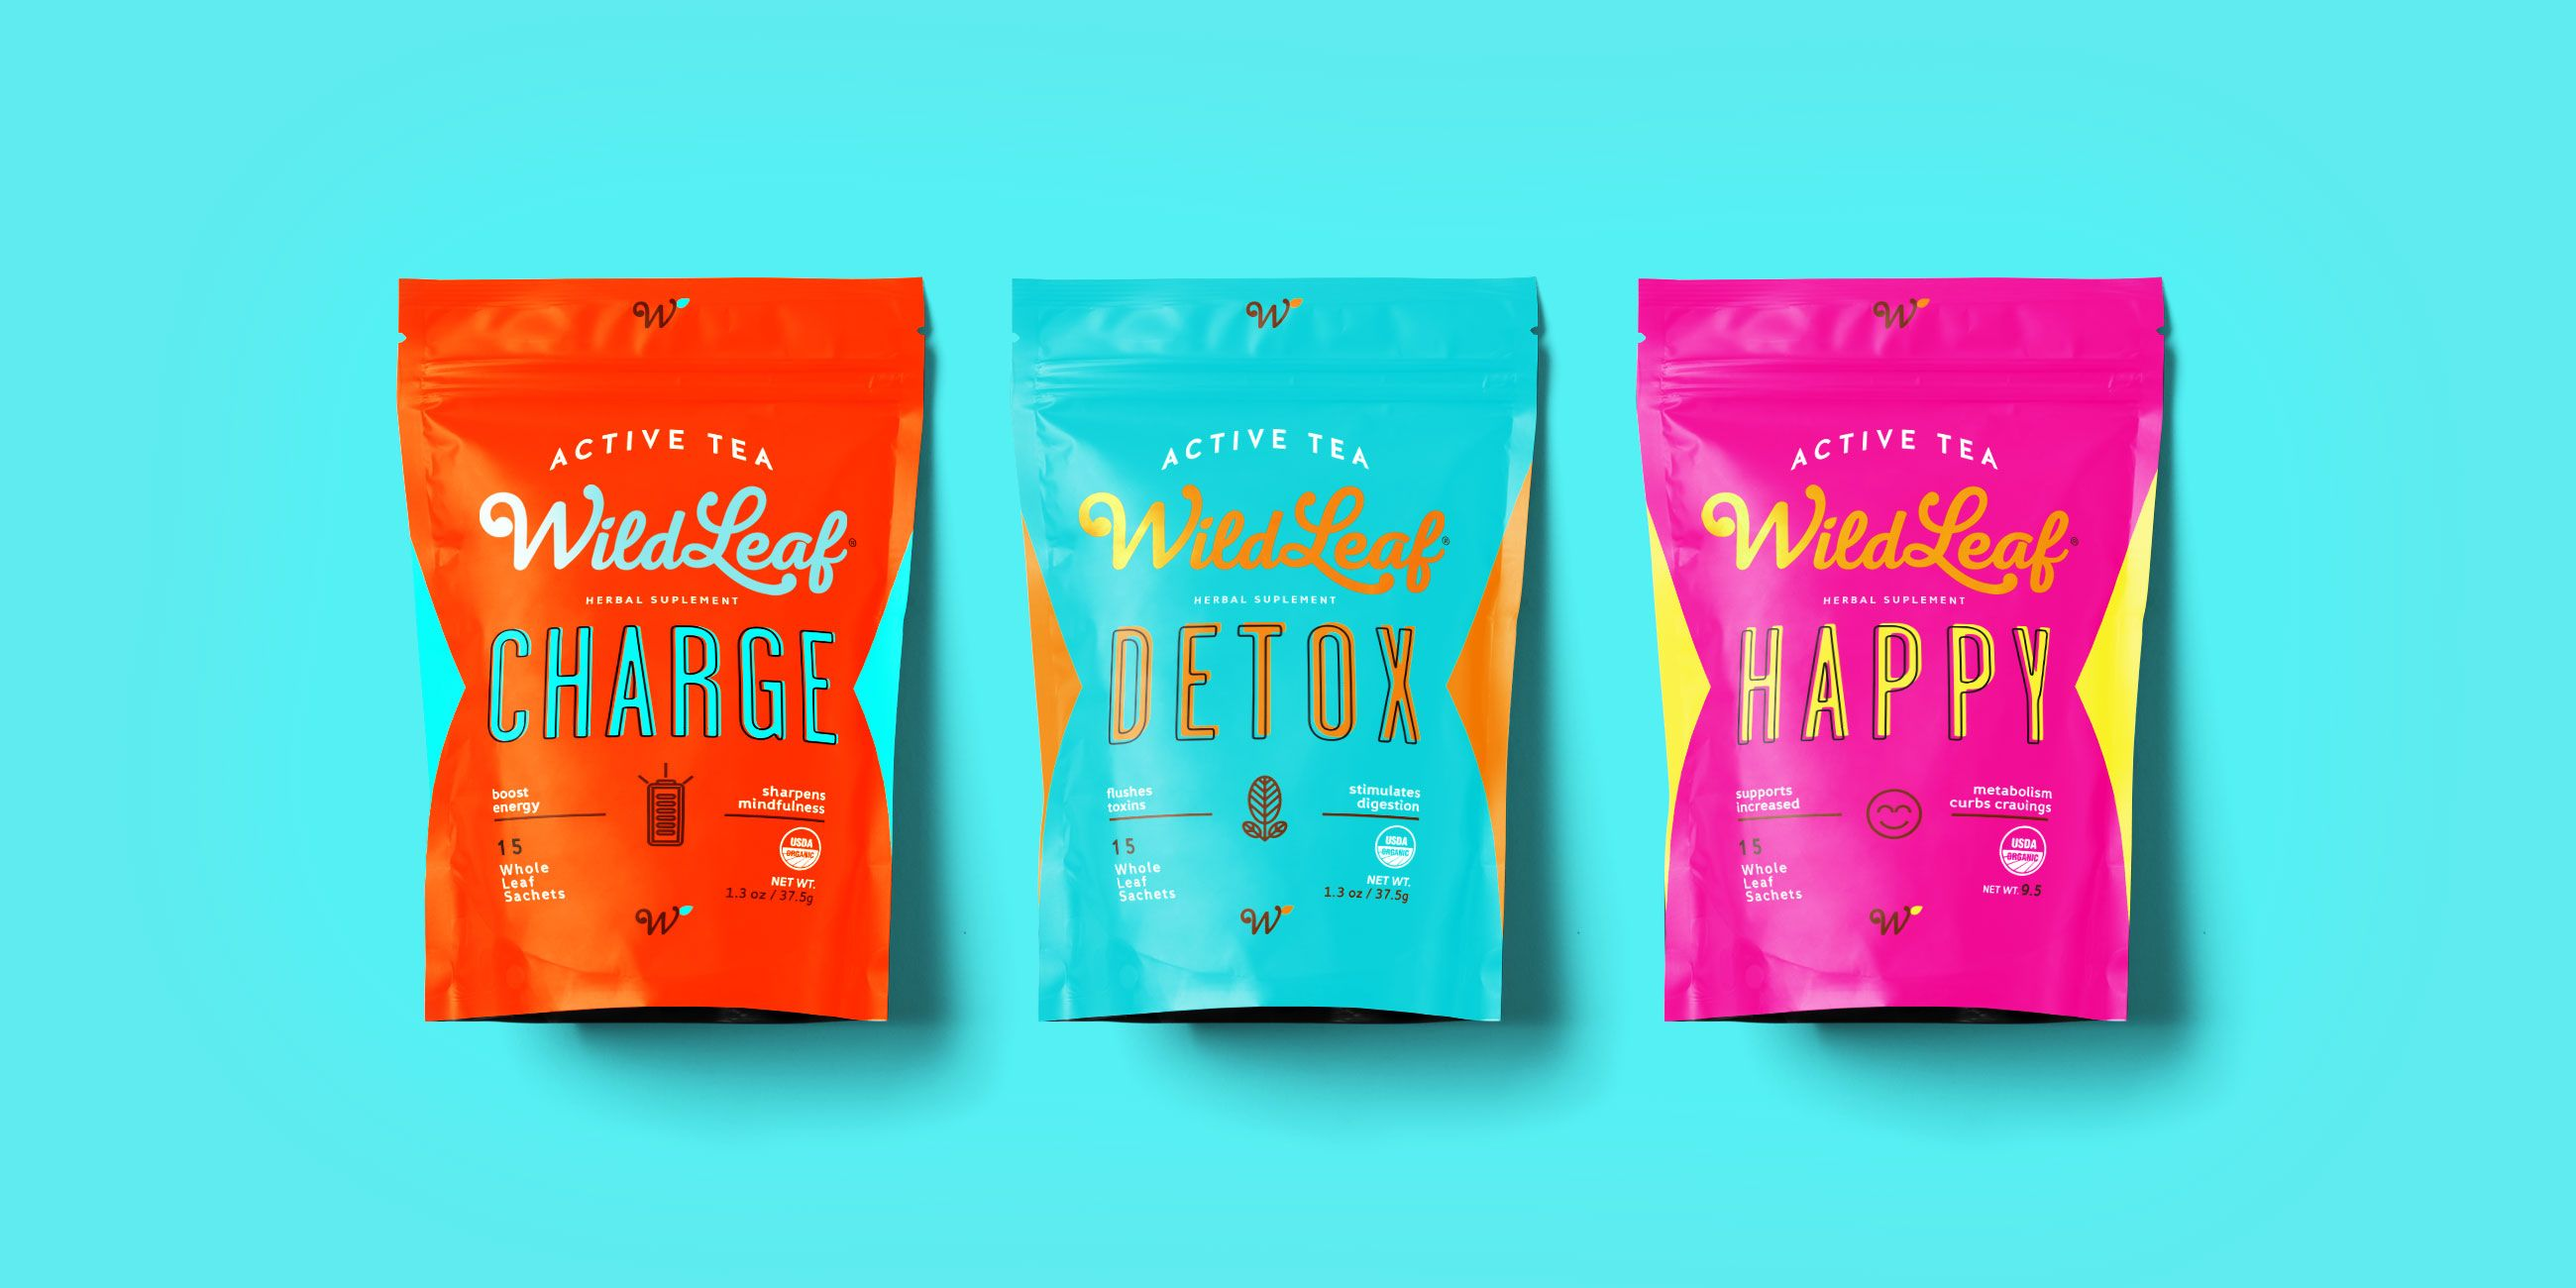 Vibrant Vitality Energetic Conveying Emotional Benefits Of Product Contrast Of Fonts Interesting Lay Brand Identity Package Identity Package Tea Packaging Michelle rodriguez s w t photos hot